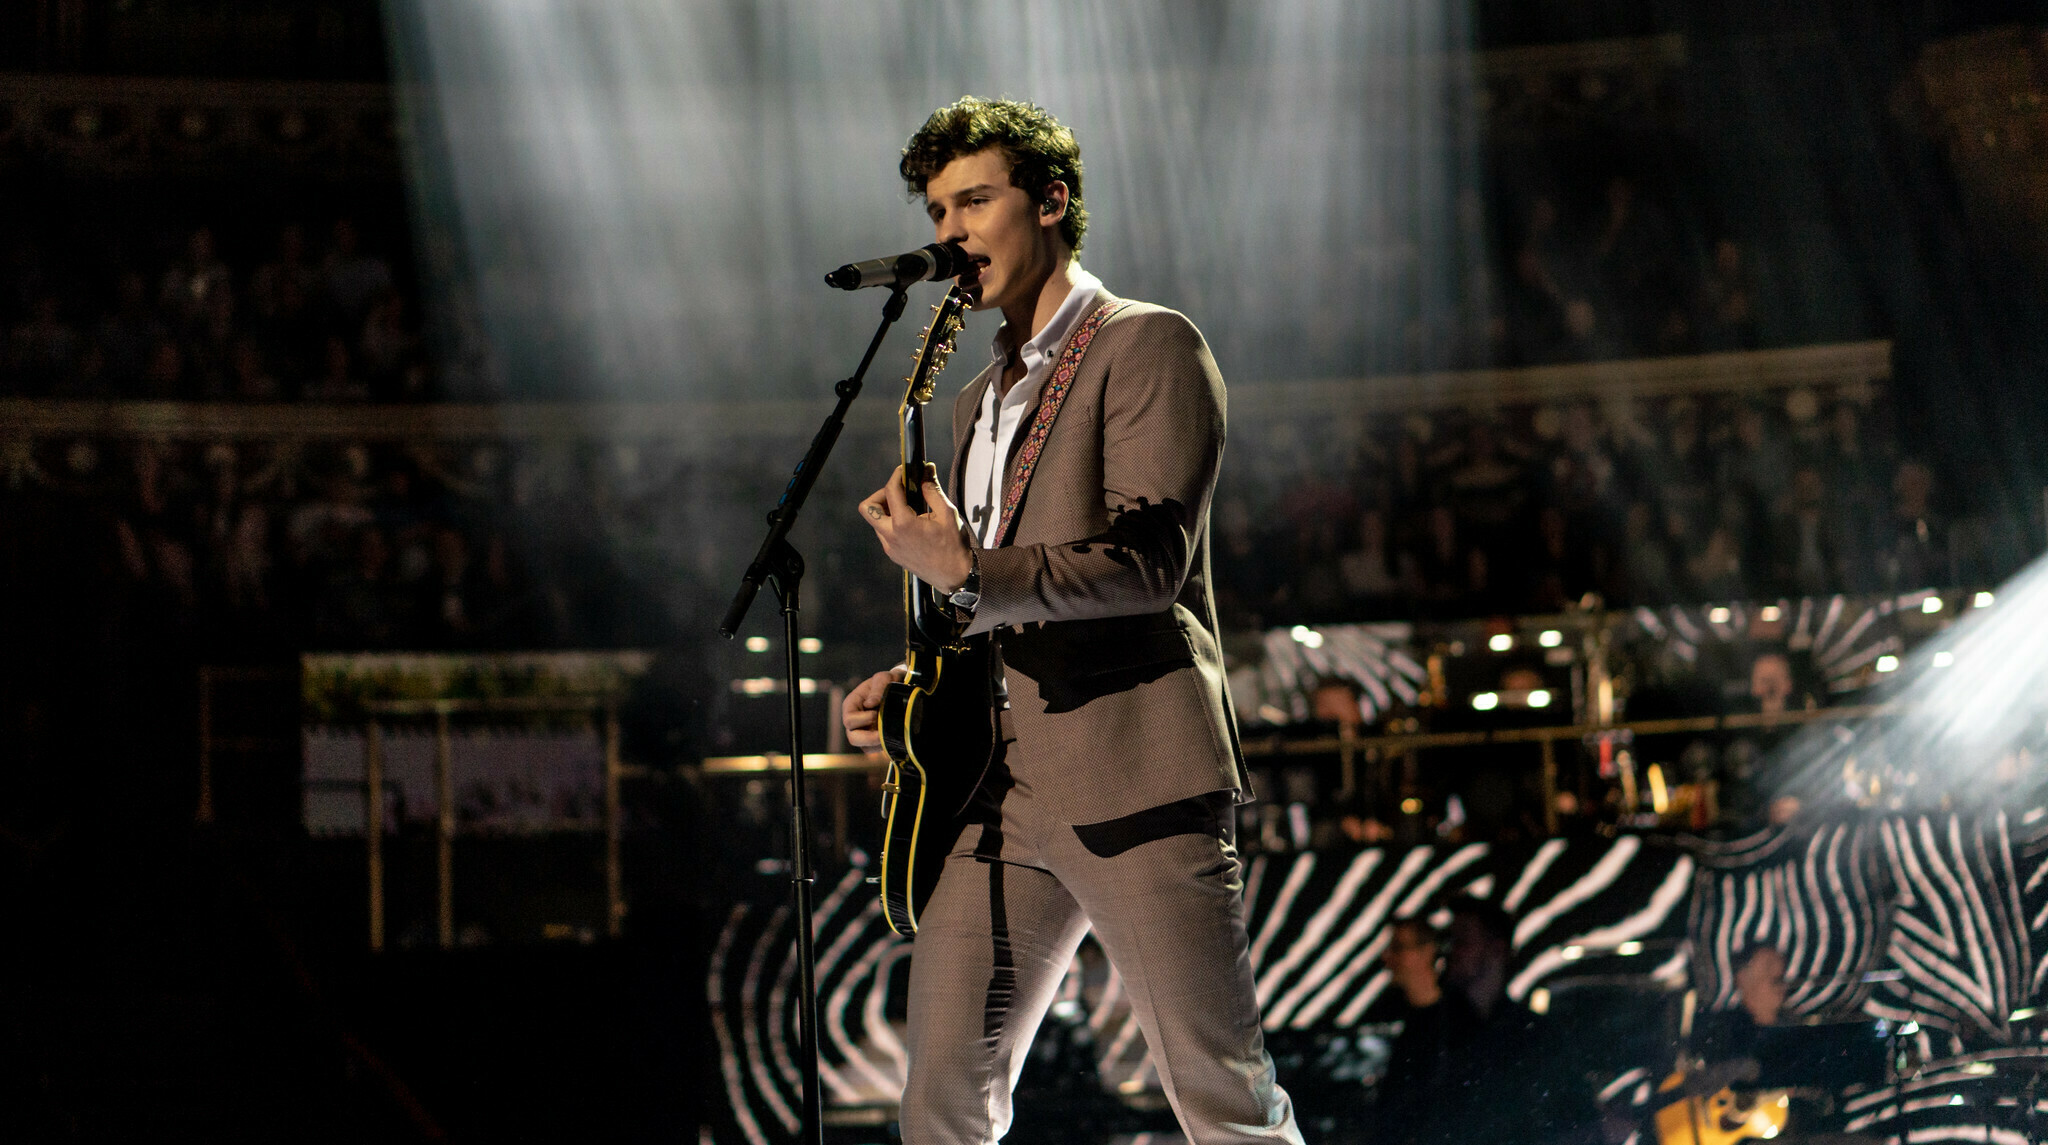 Shawn Mendes performing